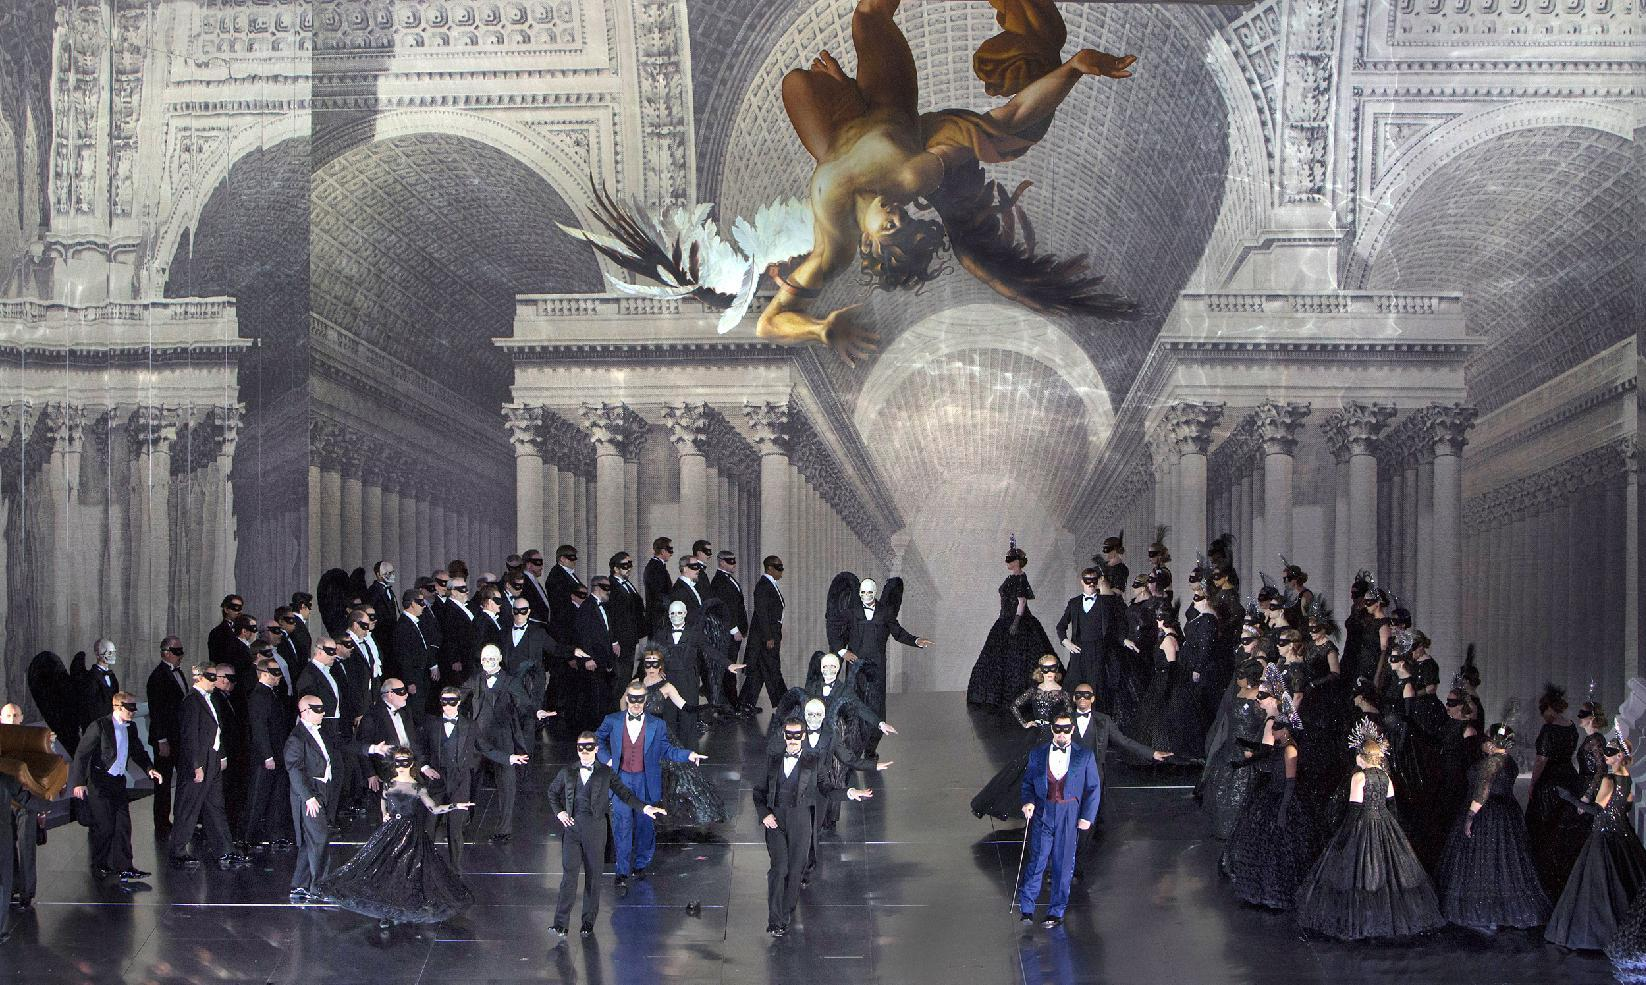 """In this Nov. 5, 2012, photo provided by the Metropolitan Opera, a scene from Verdi's """"A Masked Ball"""" is performed during a dress rehearsal at the Metropolitan Opera in New York. (AP Photo/Ken Howard)"""